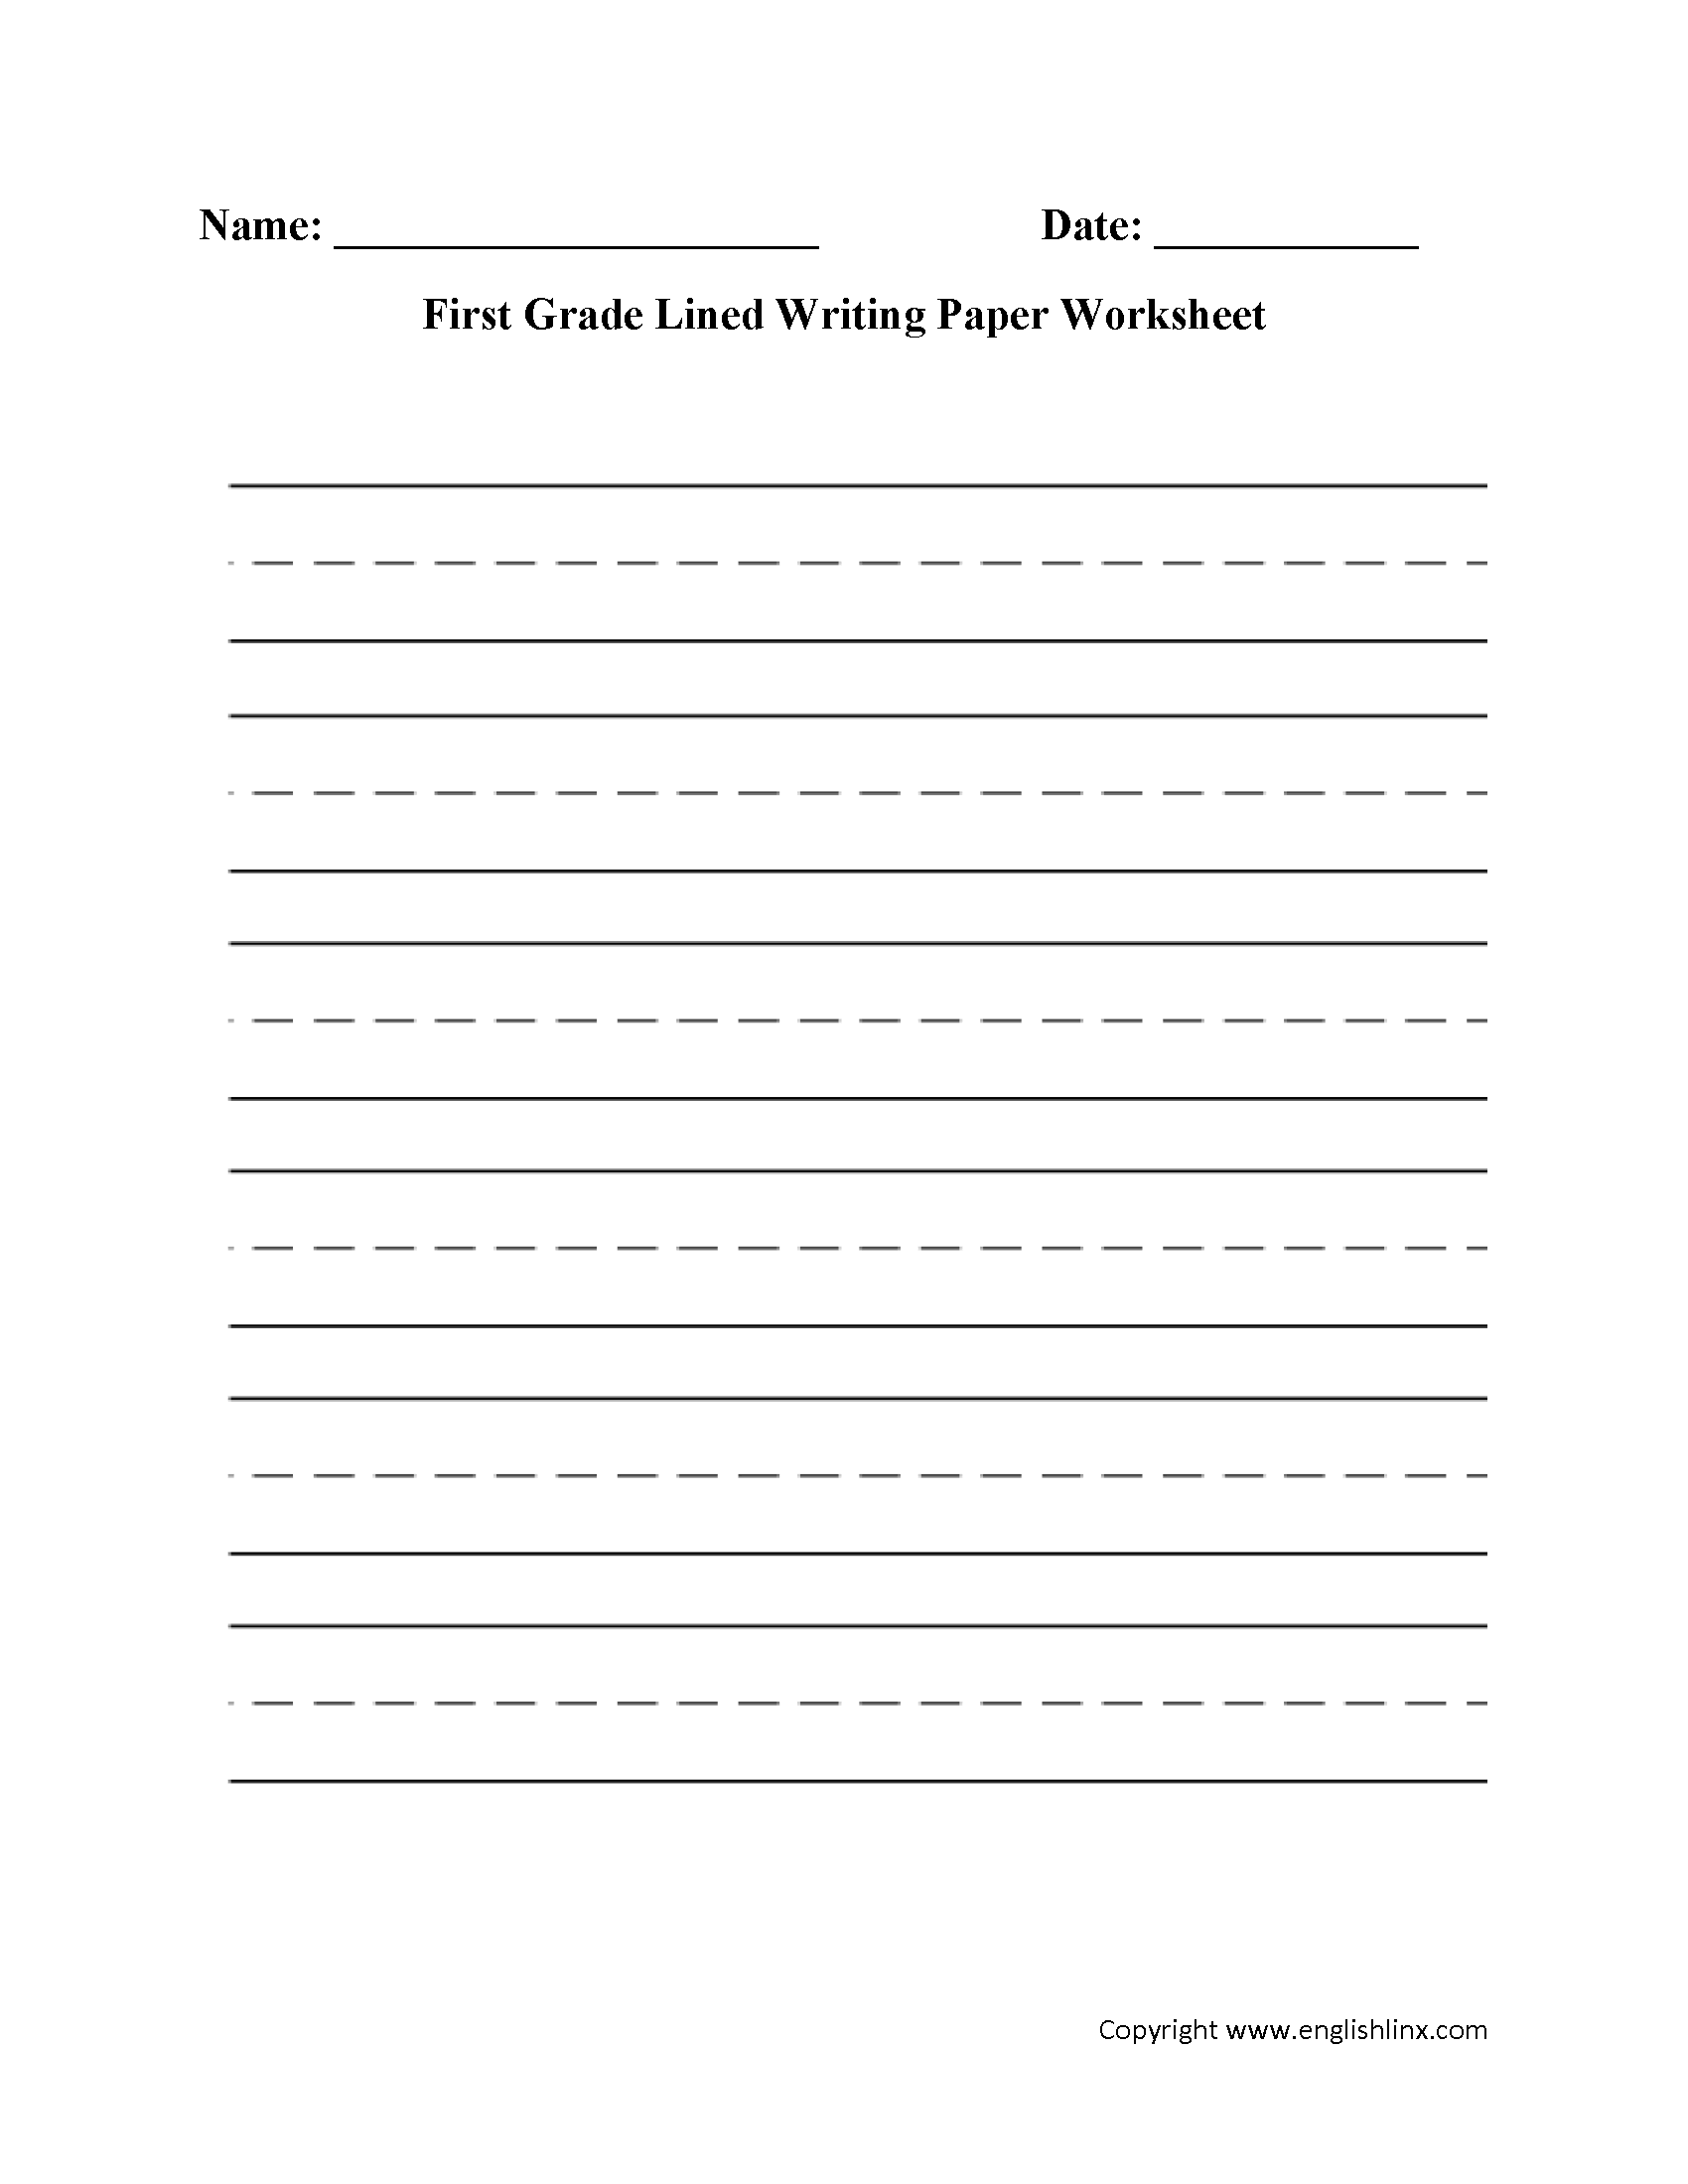 medium resolution of Writing Worksheets Lined Writing Paper Worksheets - Best Writing Worksheets  Lined Writing Pap…   Writing lines